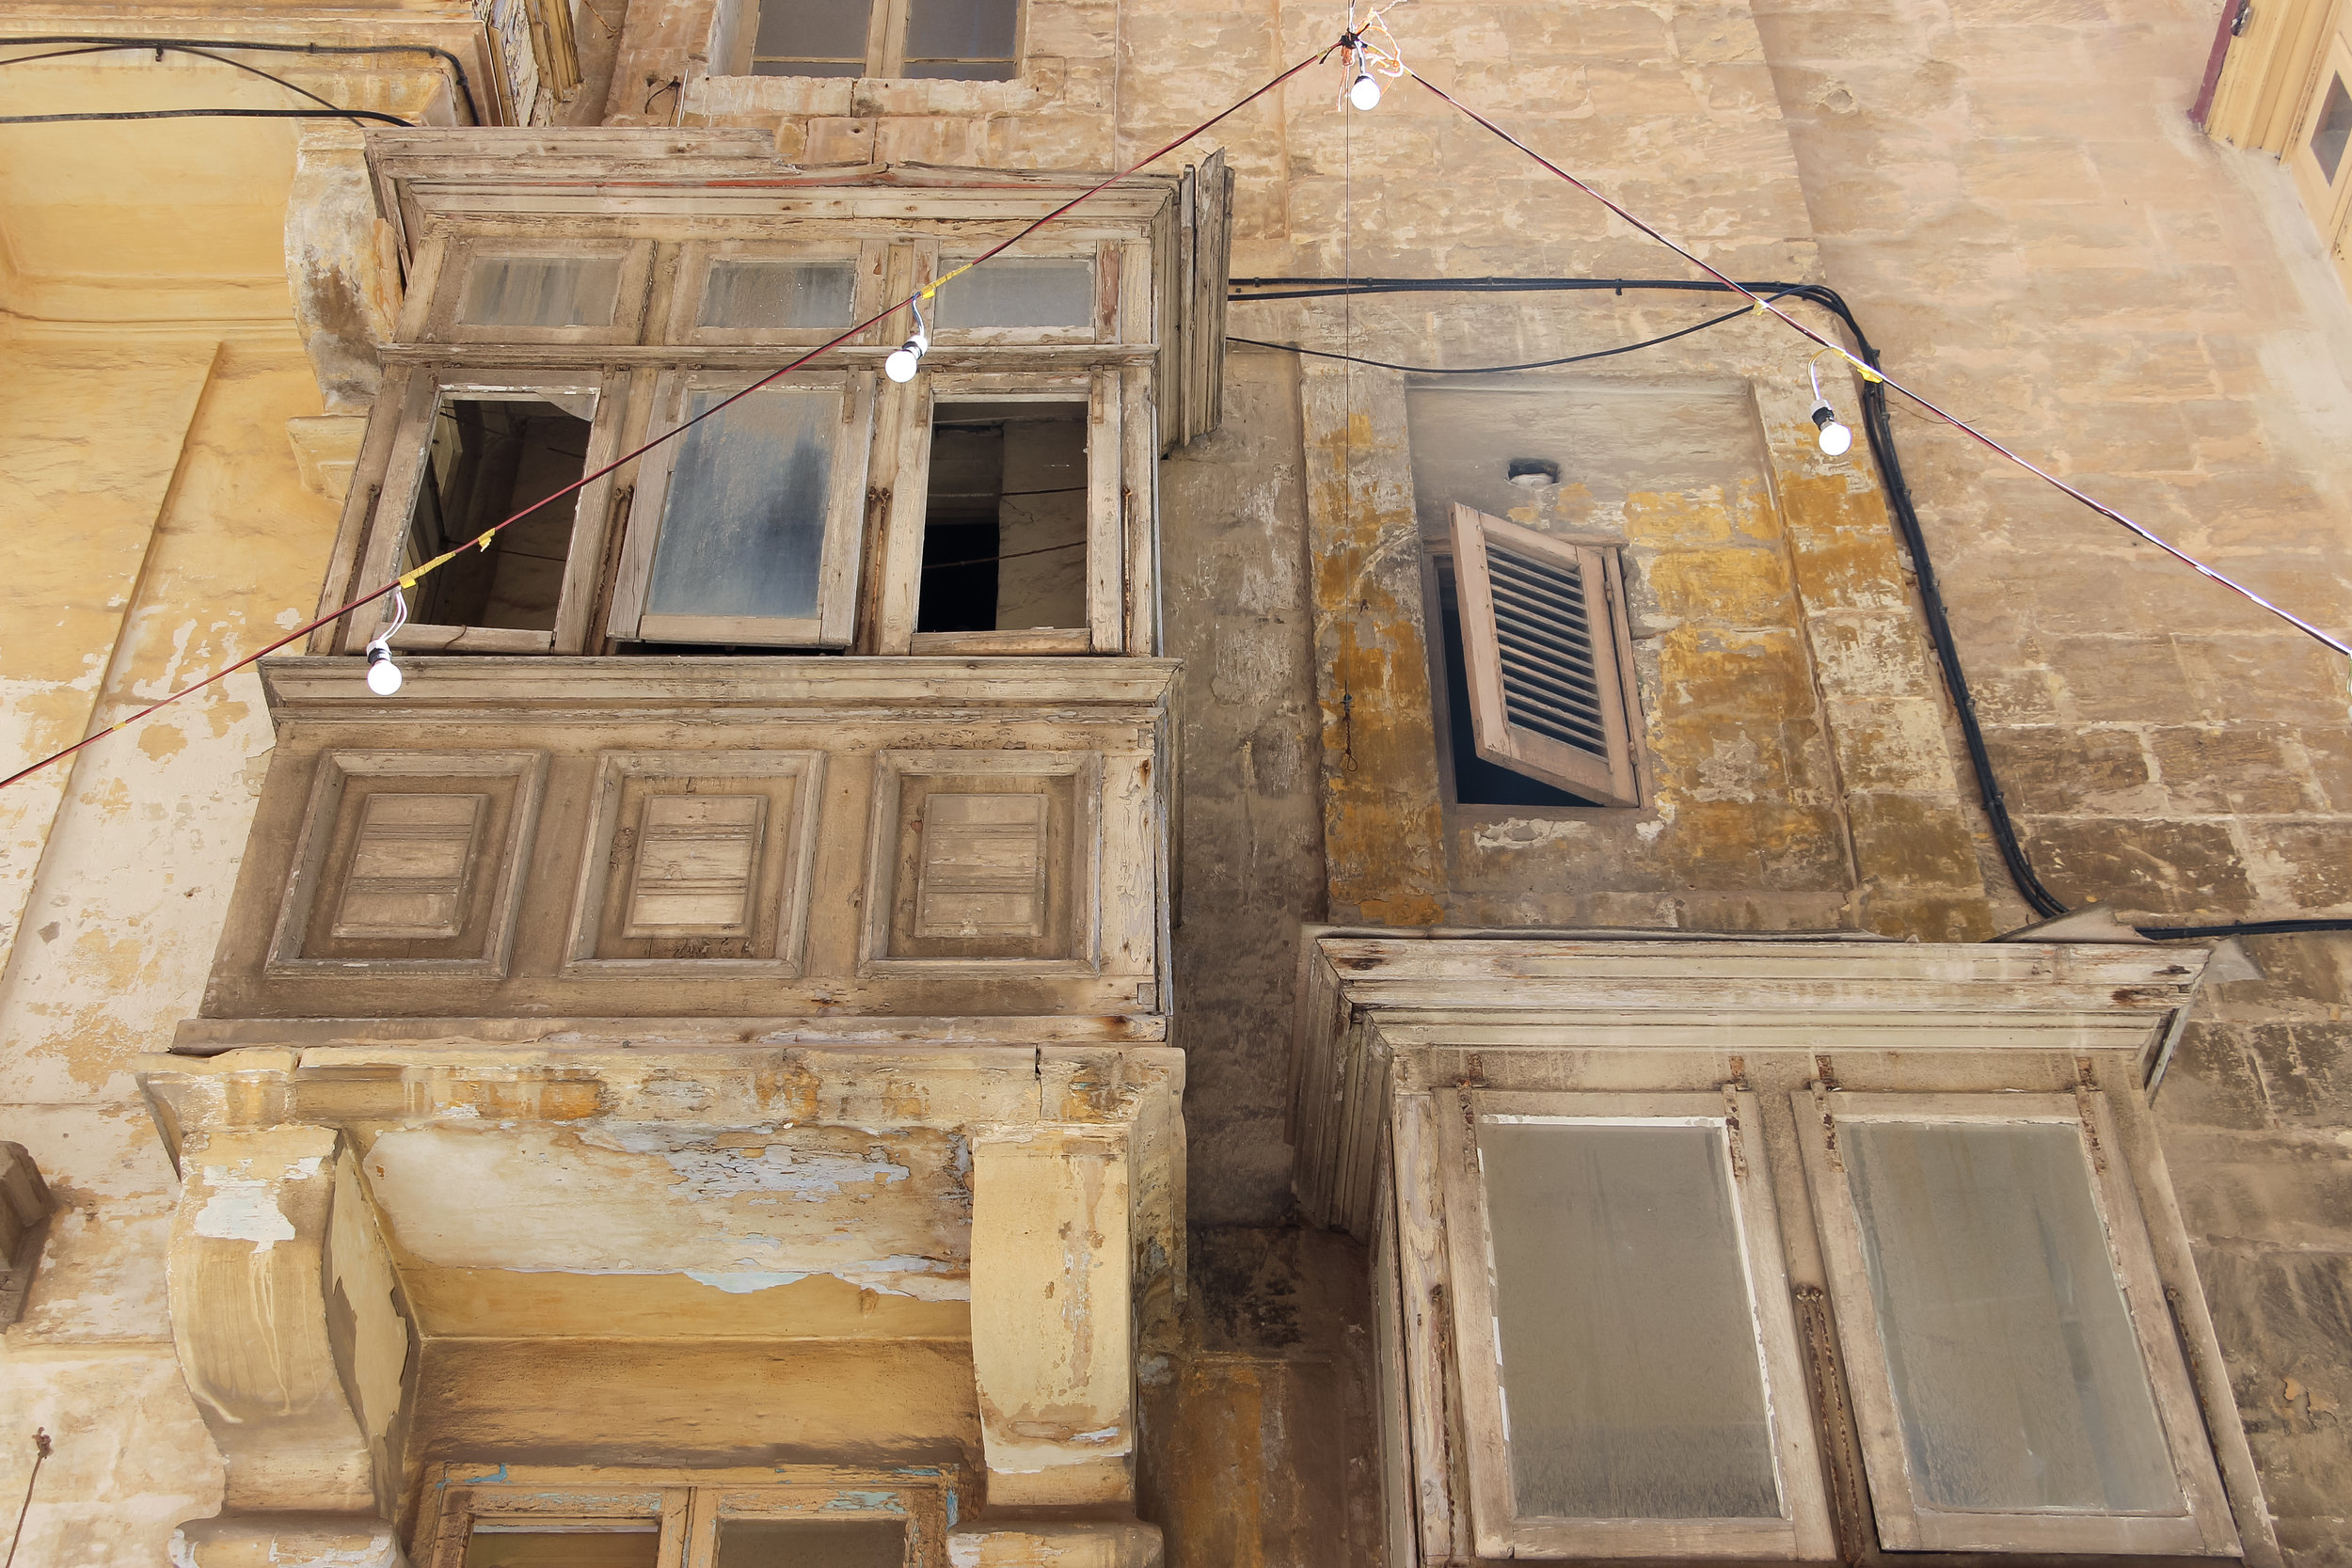 Time is Flying | Old House of Malta | Traditional Enclosed Wooden BalconY, Street Light | Old Town of Valletta | - Thinking About Appreciation For Quality In Malta | Malta, Europe | DoLessGetMoreDone.com | - Canon Travel Documentary Photography - search for Liveability | Sustainability